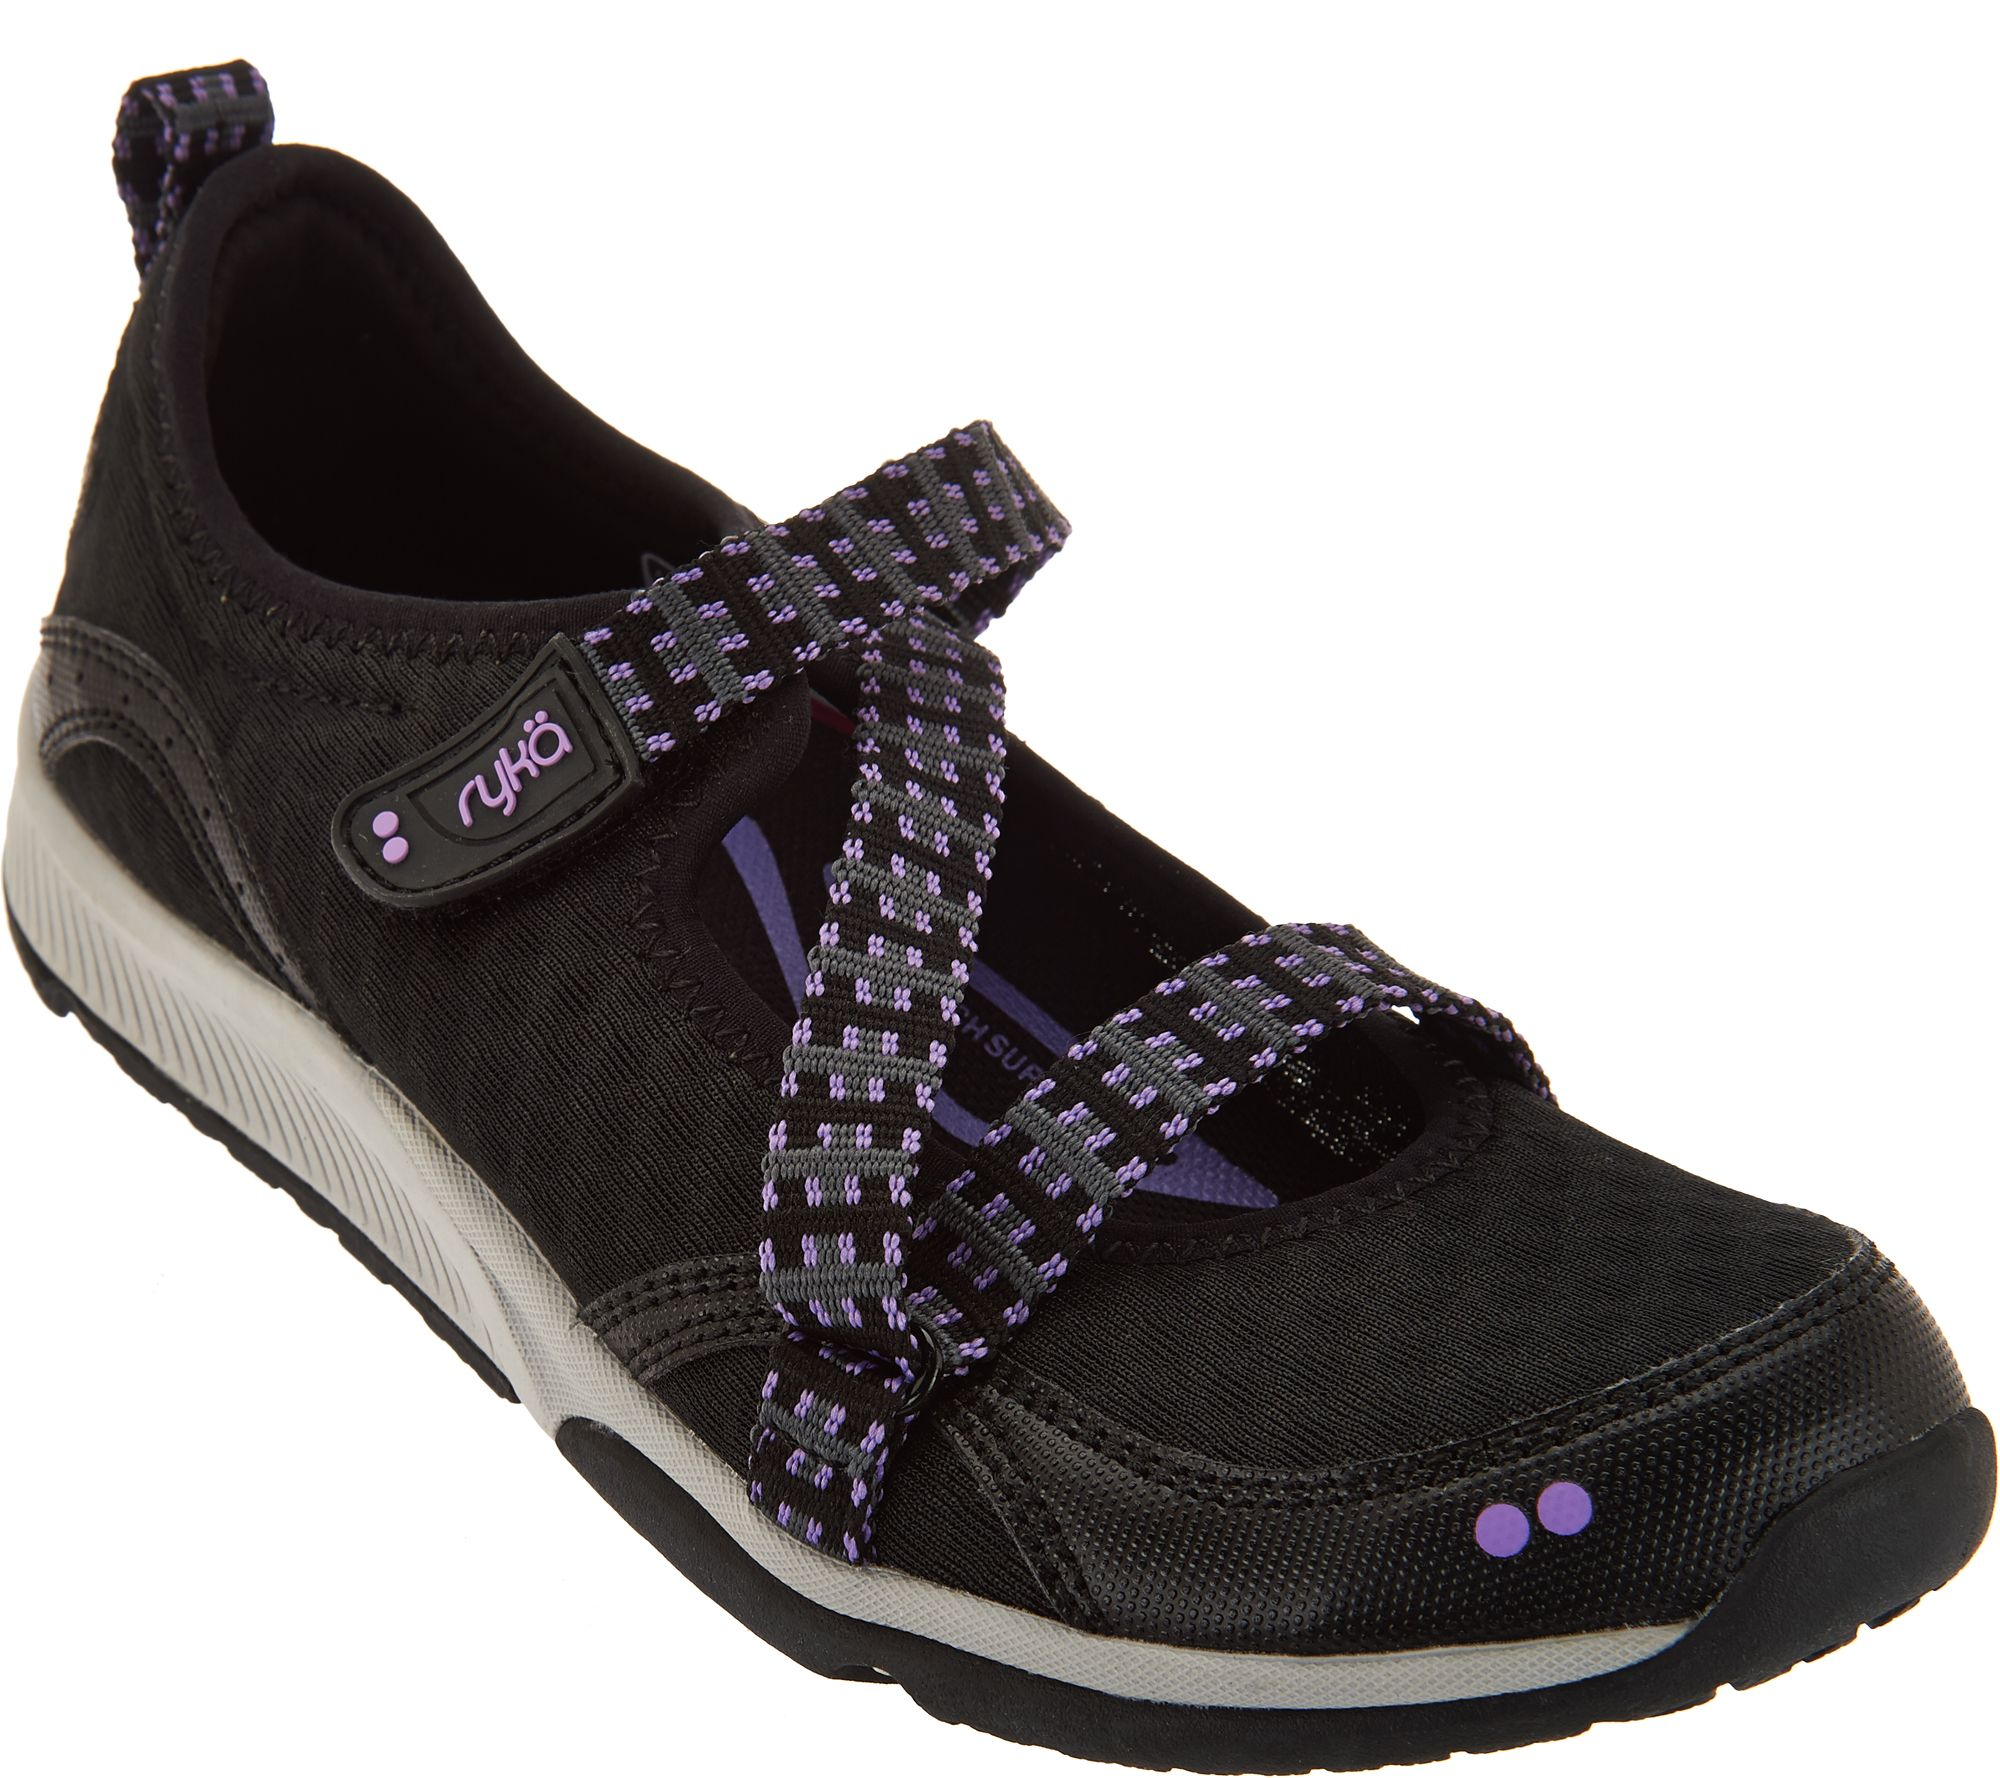 Ryka sandals shoes - Ryka Adjustable Mesh Mary Jane Sneakers Kailee A287807